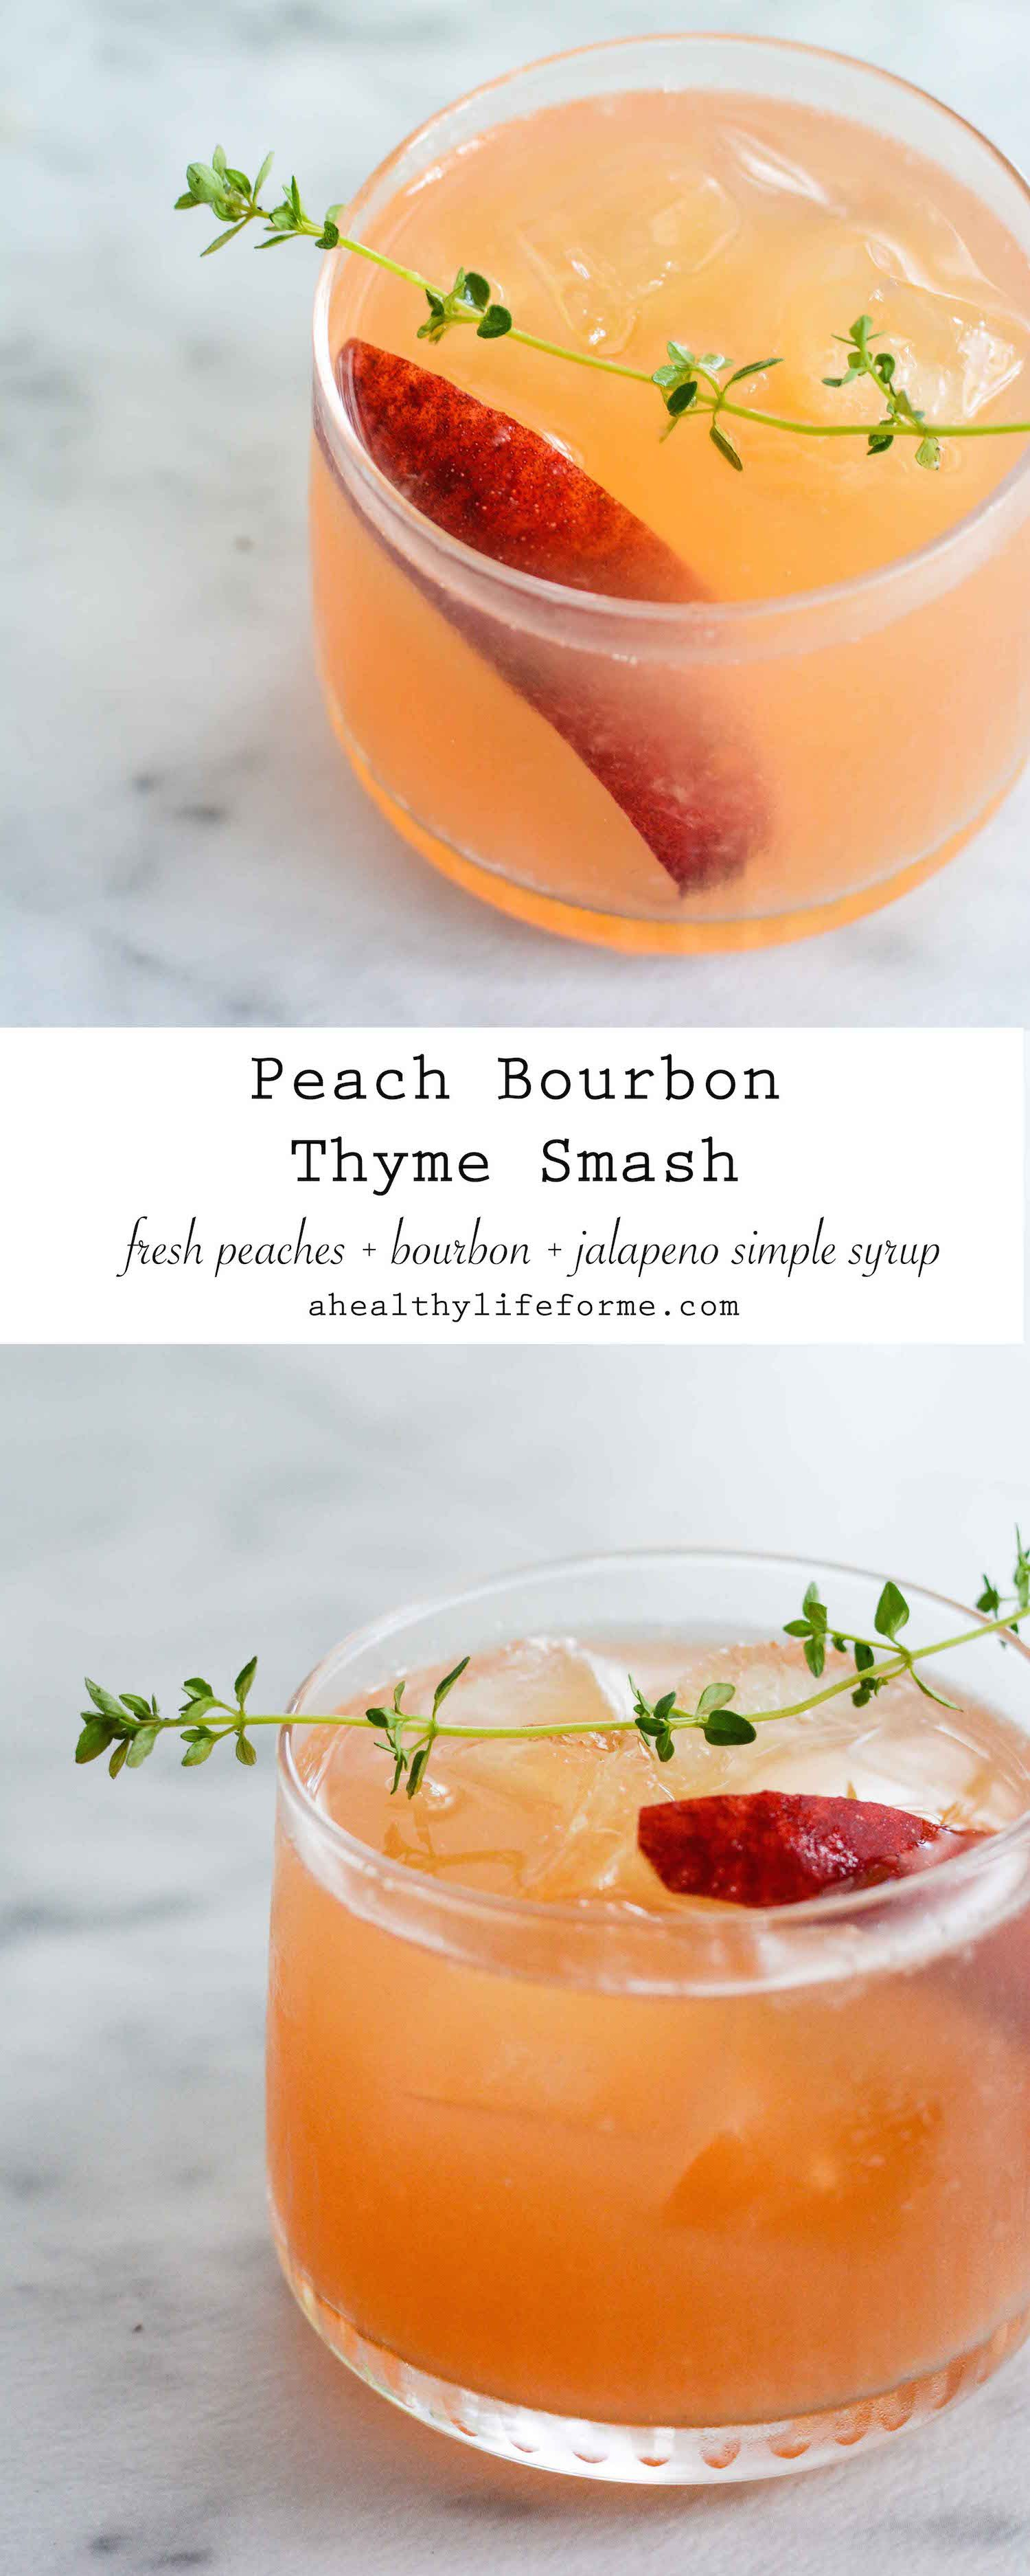 Peach Bourbon Thyme Smash Cocktail Recipe made with fresh peaches and jalapeno simple syrup   ahealthylifeforme.com